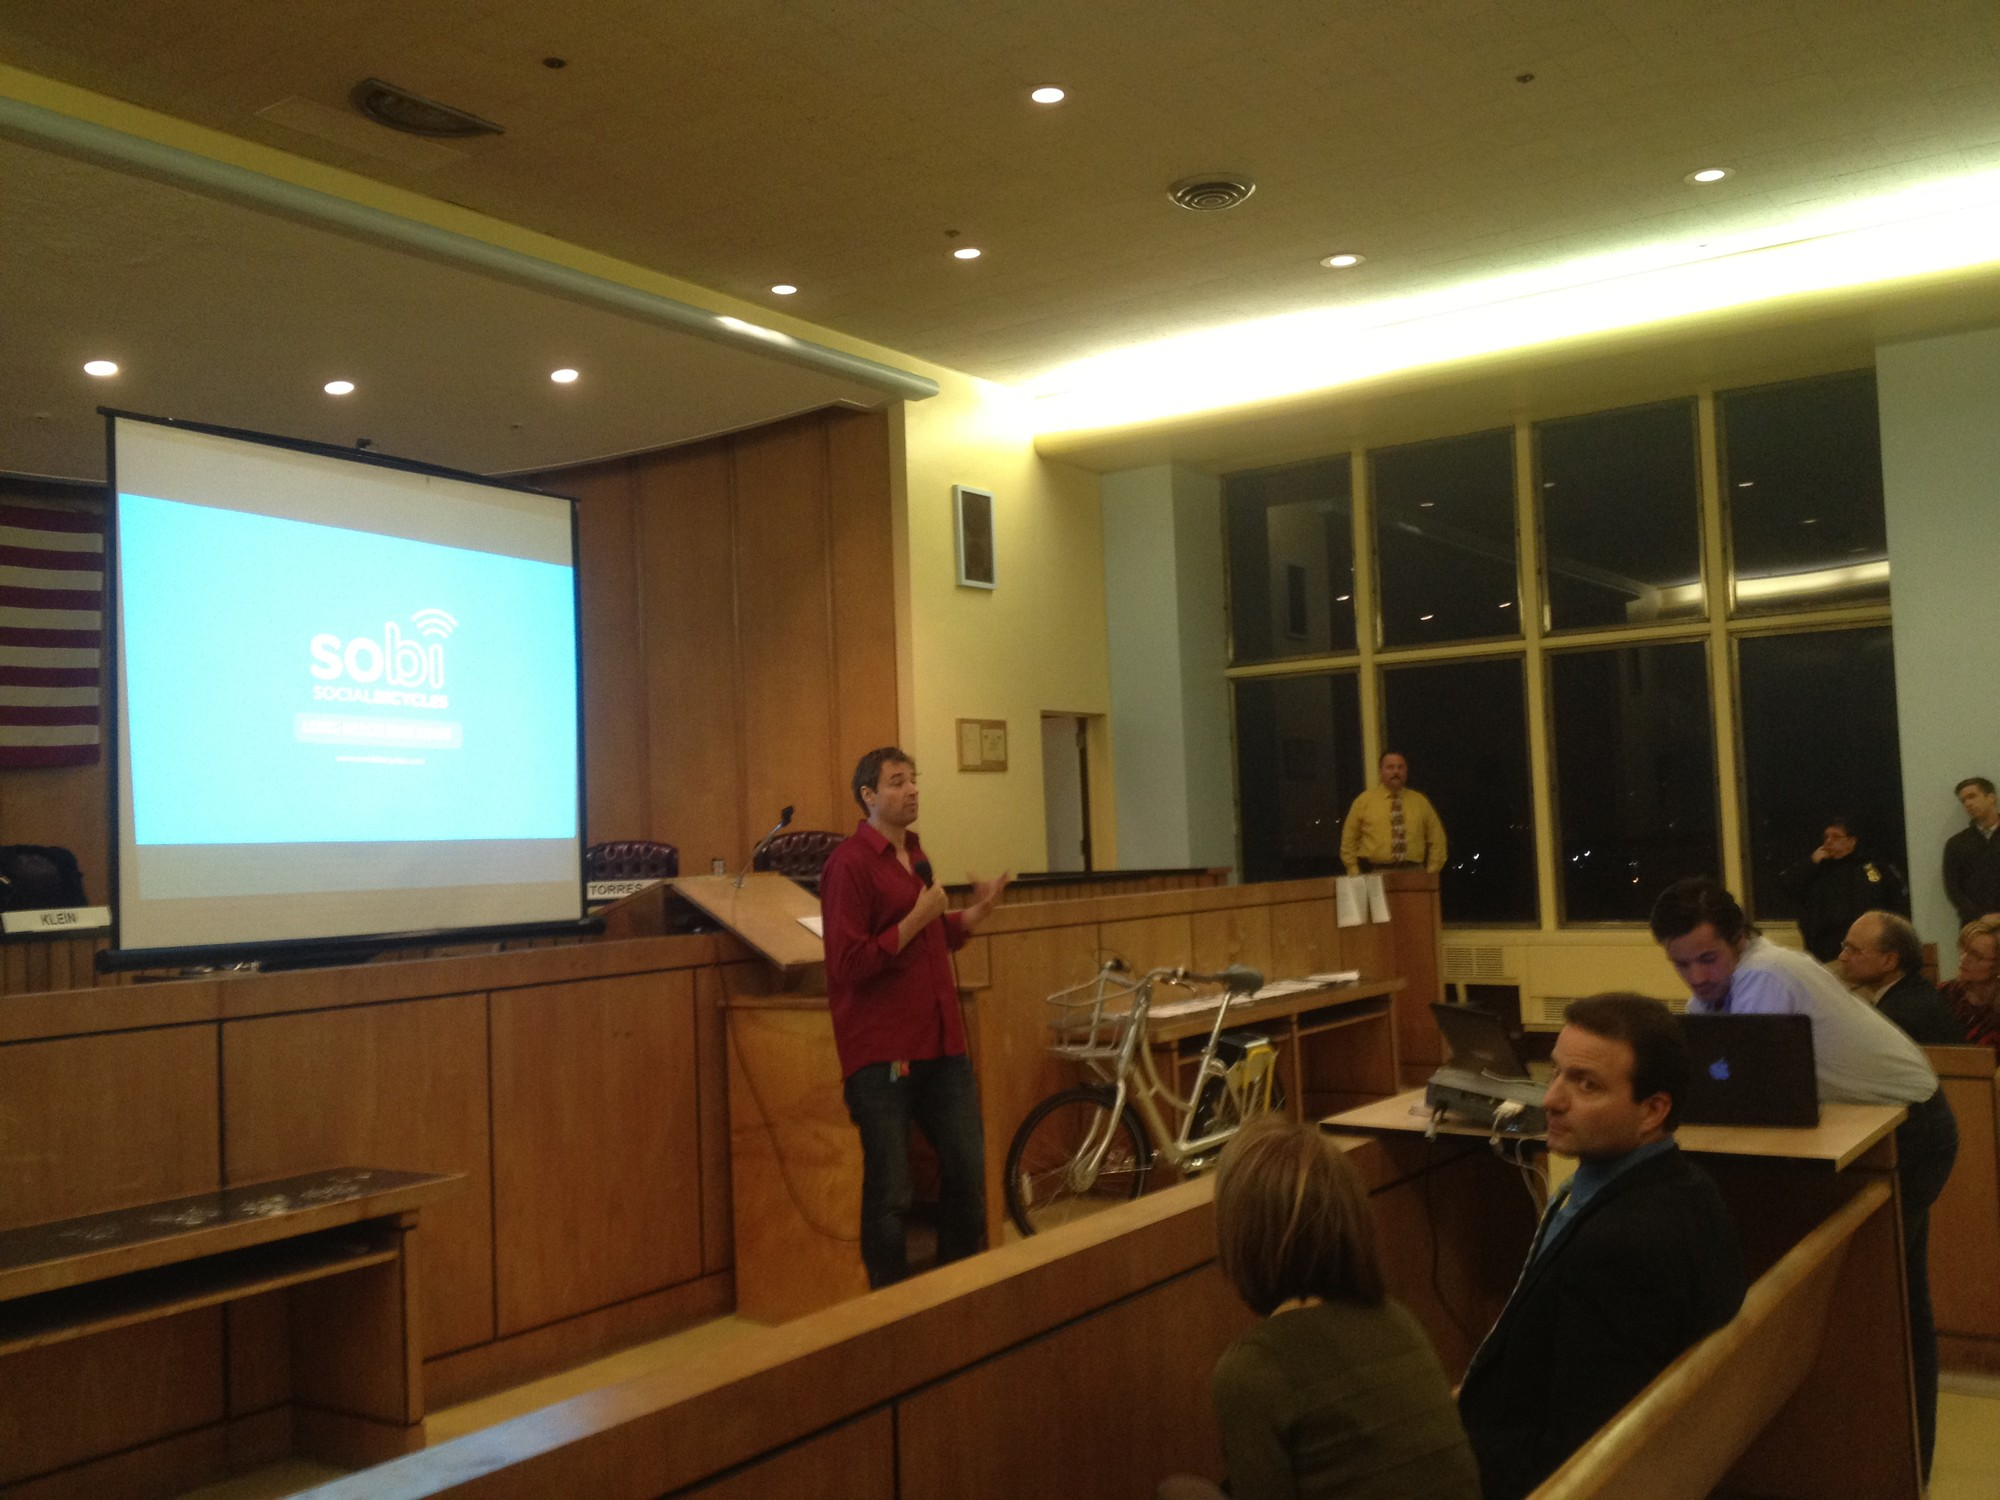 Social Bicycle founder and CEO Ryan Rzepecki made a presentation at the meeting.